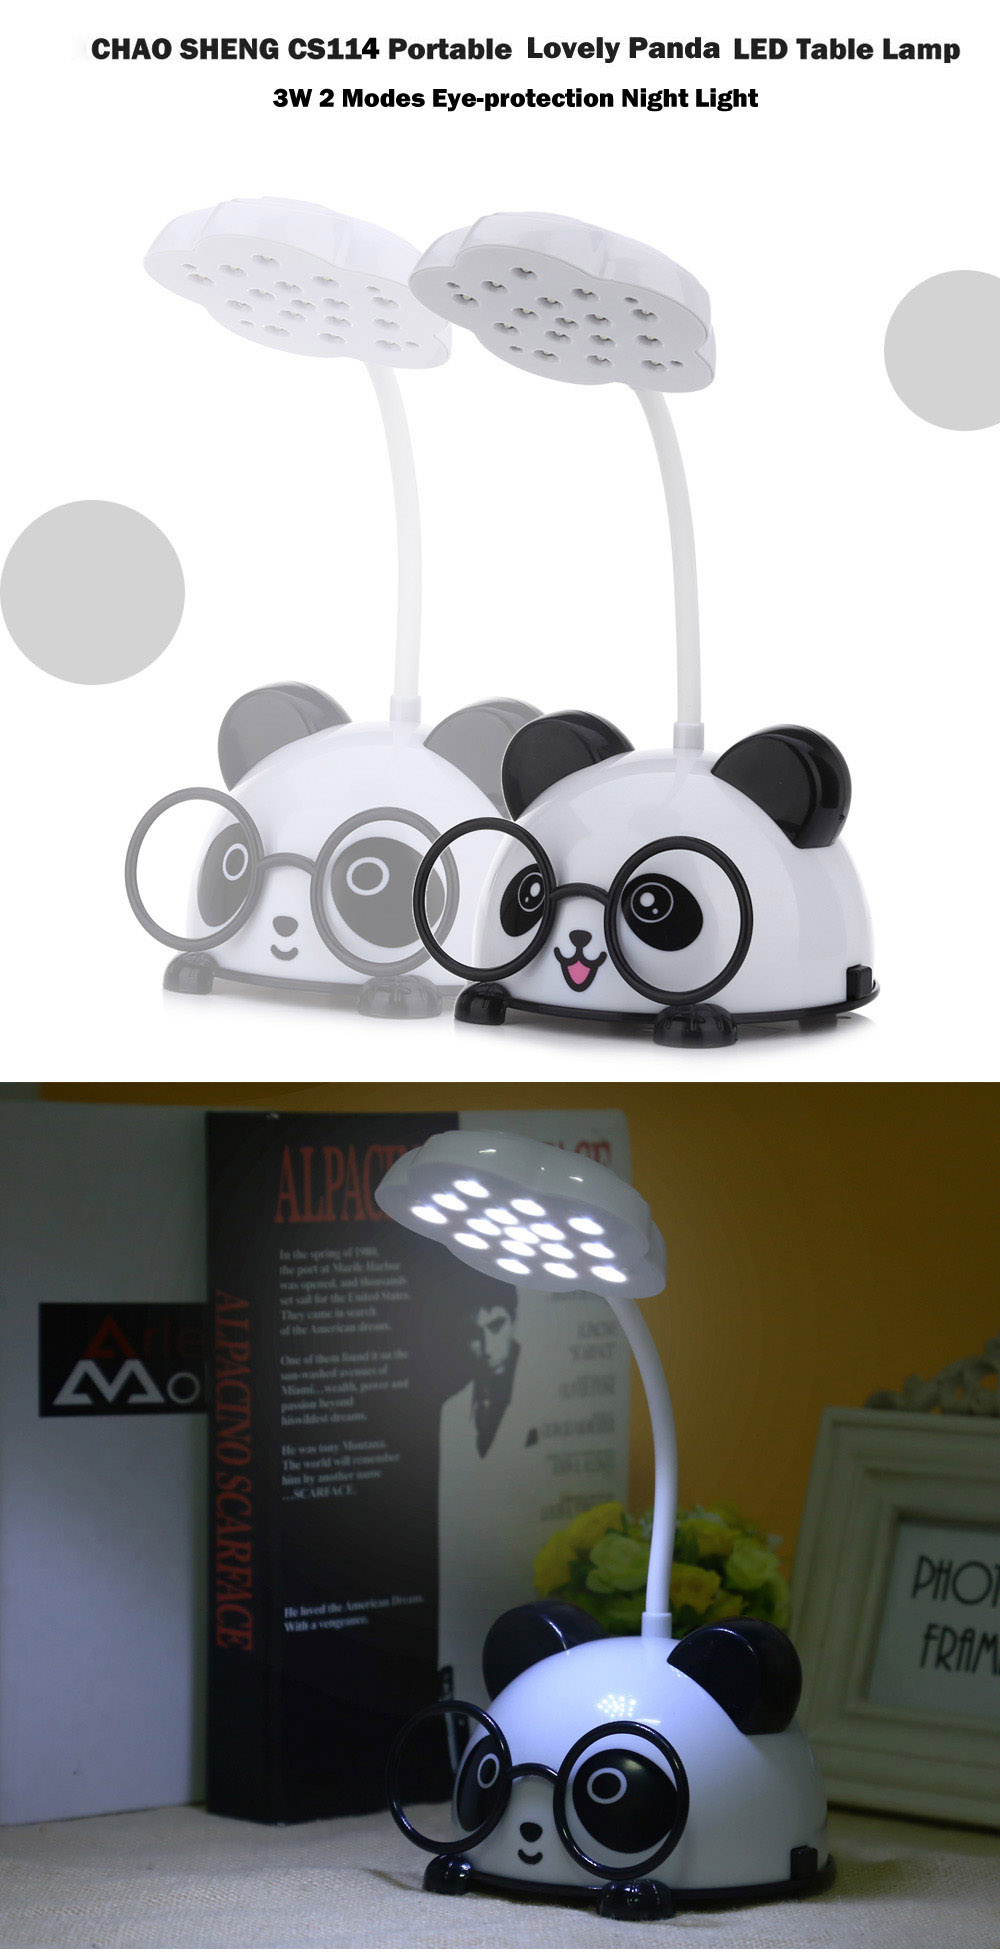 CHAO SHENG CS114 Portable Lovely Panda Eye-protection 3W LED Table Lamp 2 Modes Night Light